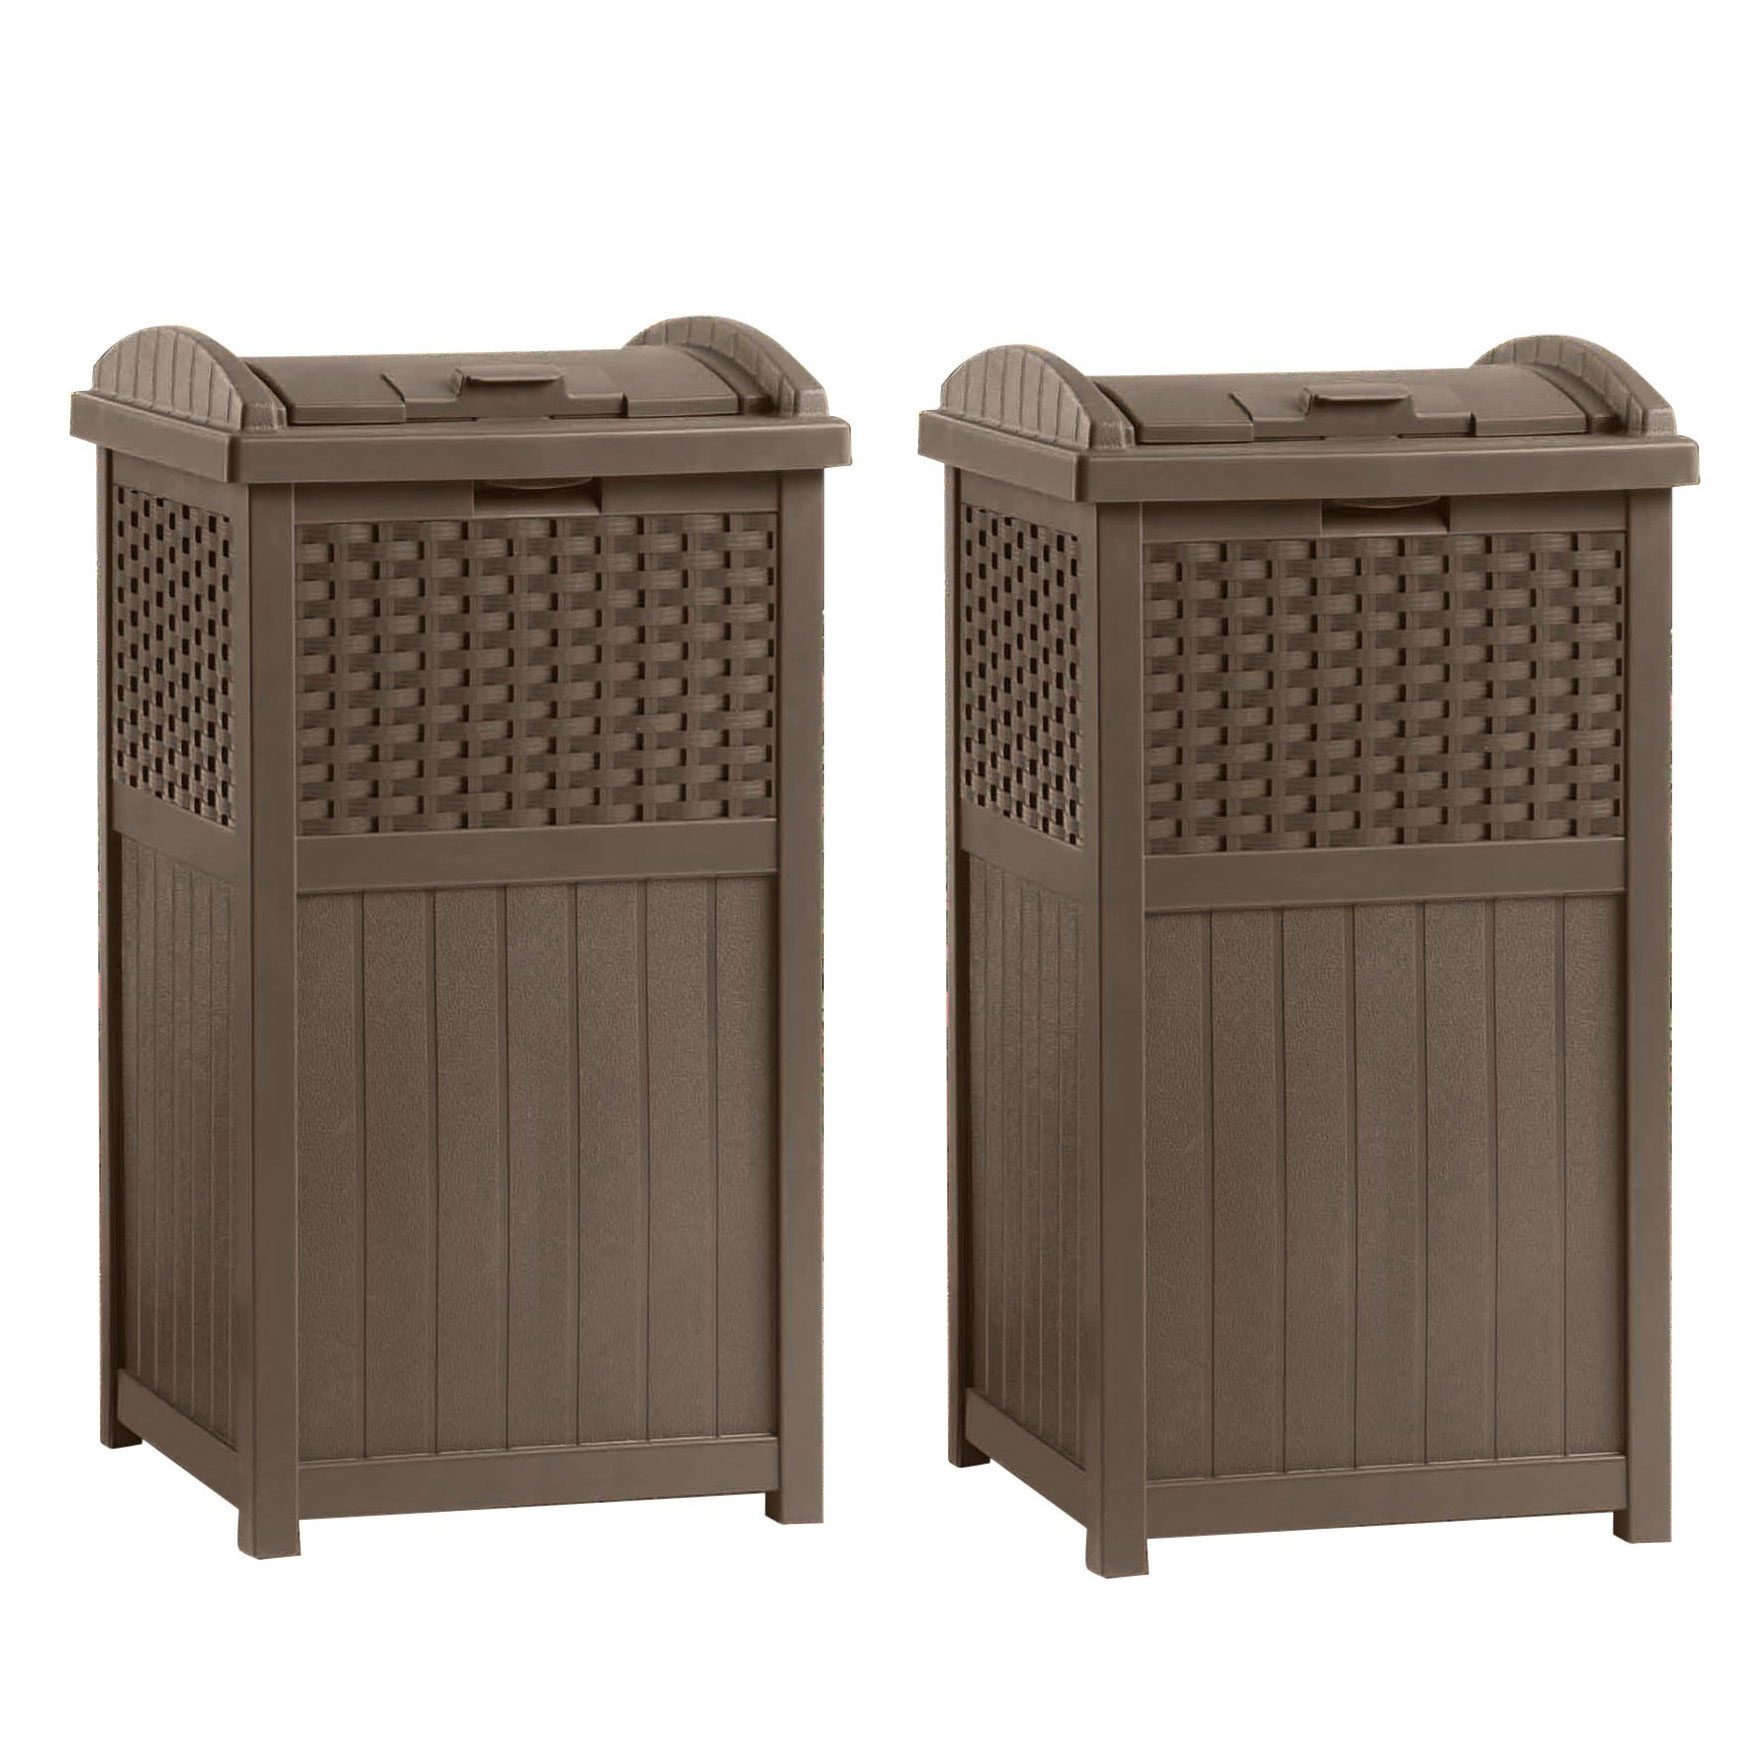 Details About Suncast Ghw1732 Home Outdoor Patio Resin Wicker Trash Can Hideaway 2 Pack